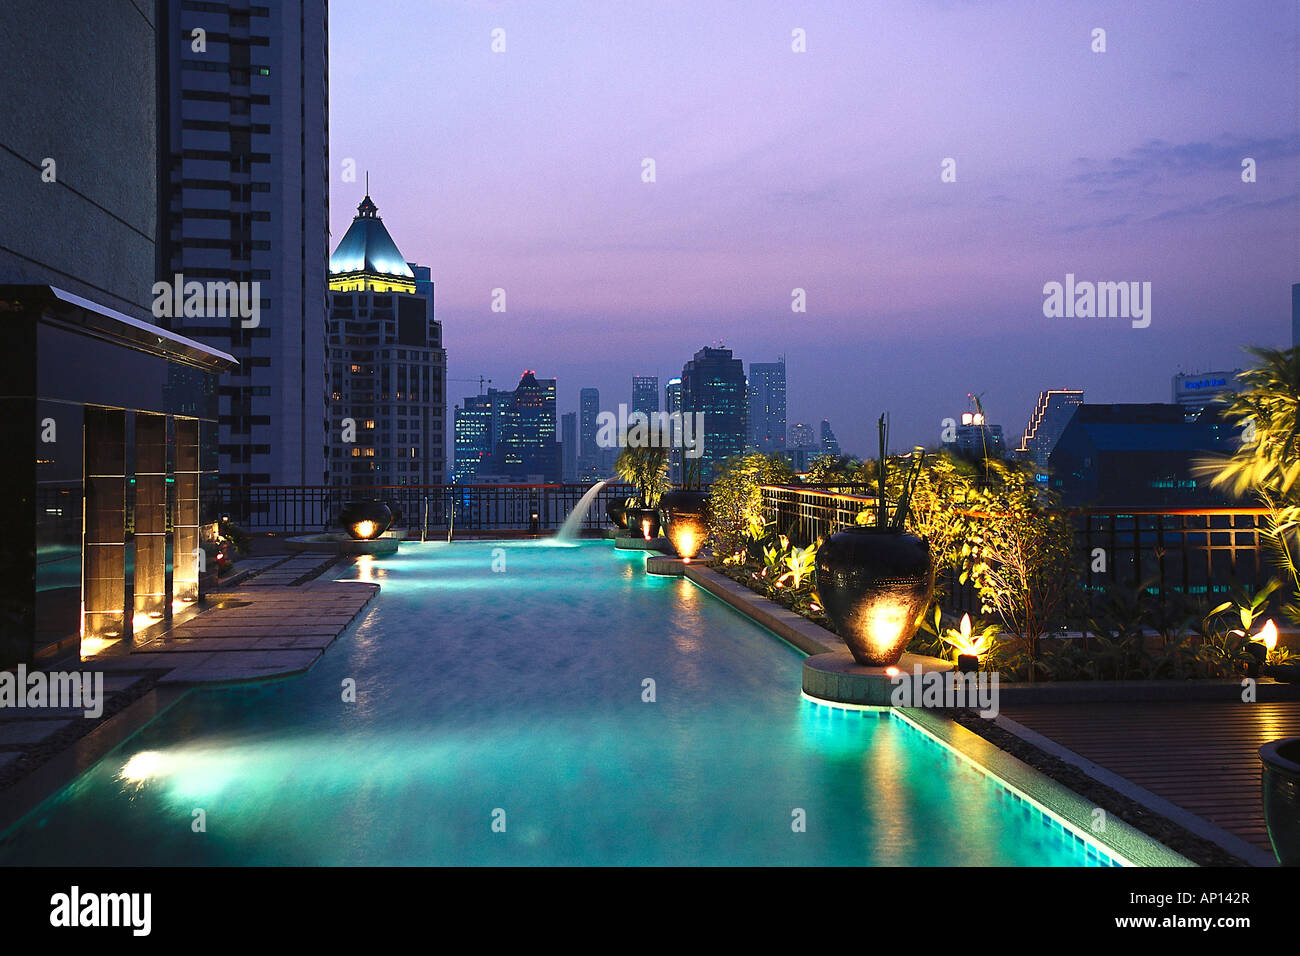 Illuminated pool on the roof of Hotel Banyan Tree, Bangkok ...